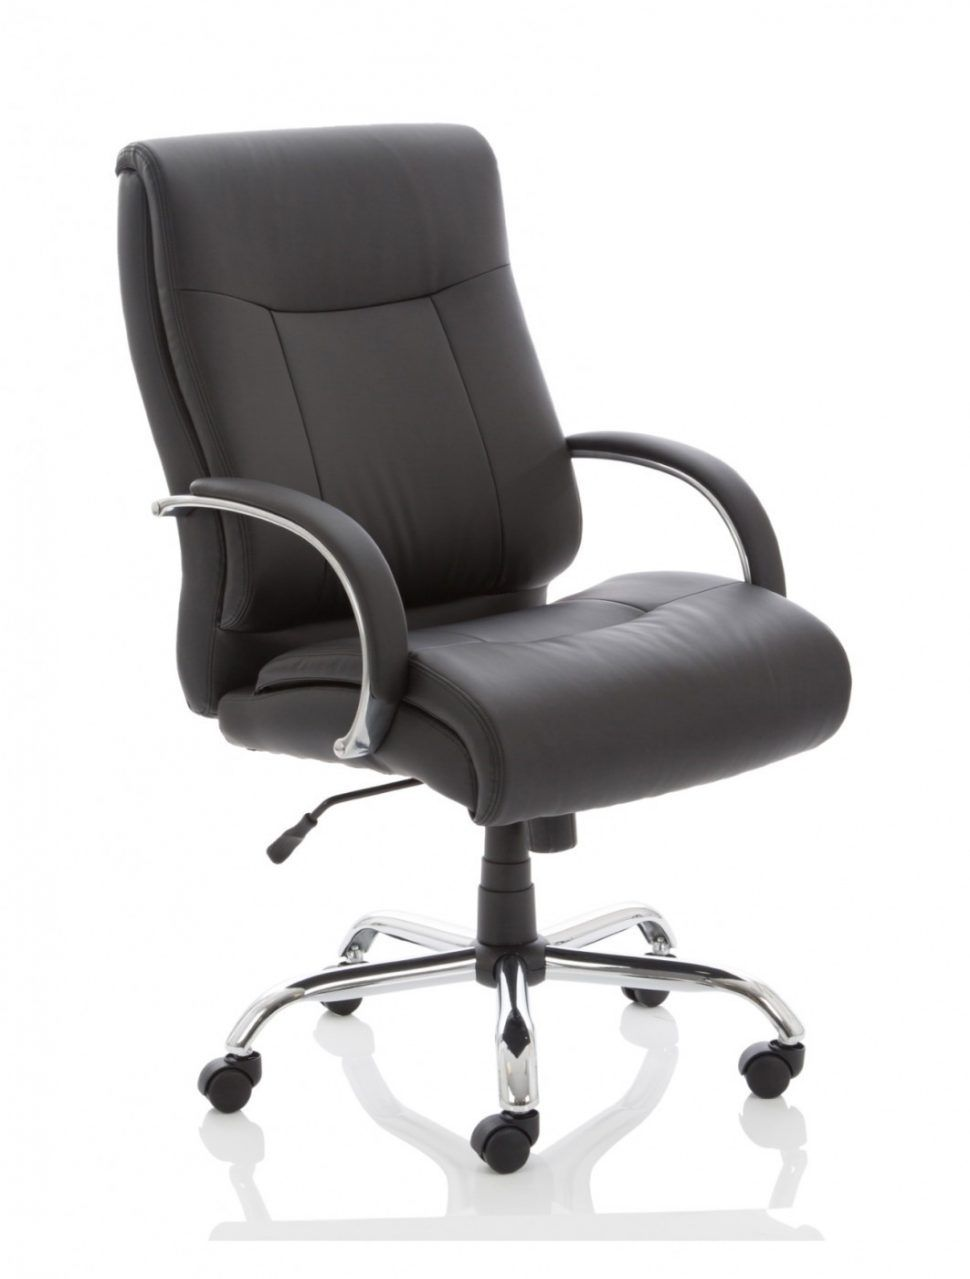 50 Lane And Tall Office Executive Chair Custom Home Furniture Check More